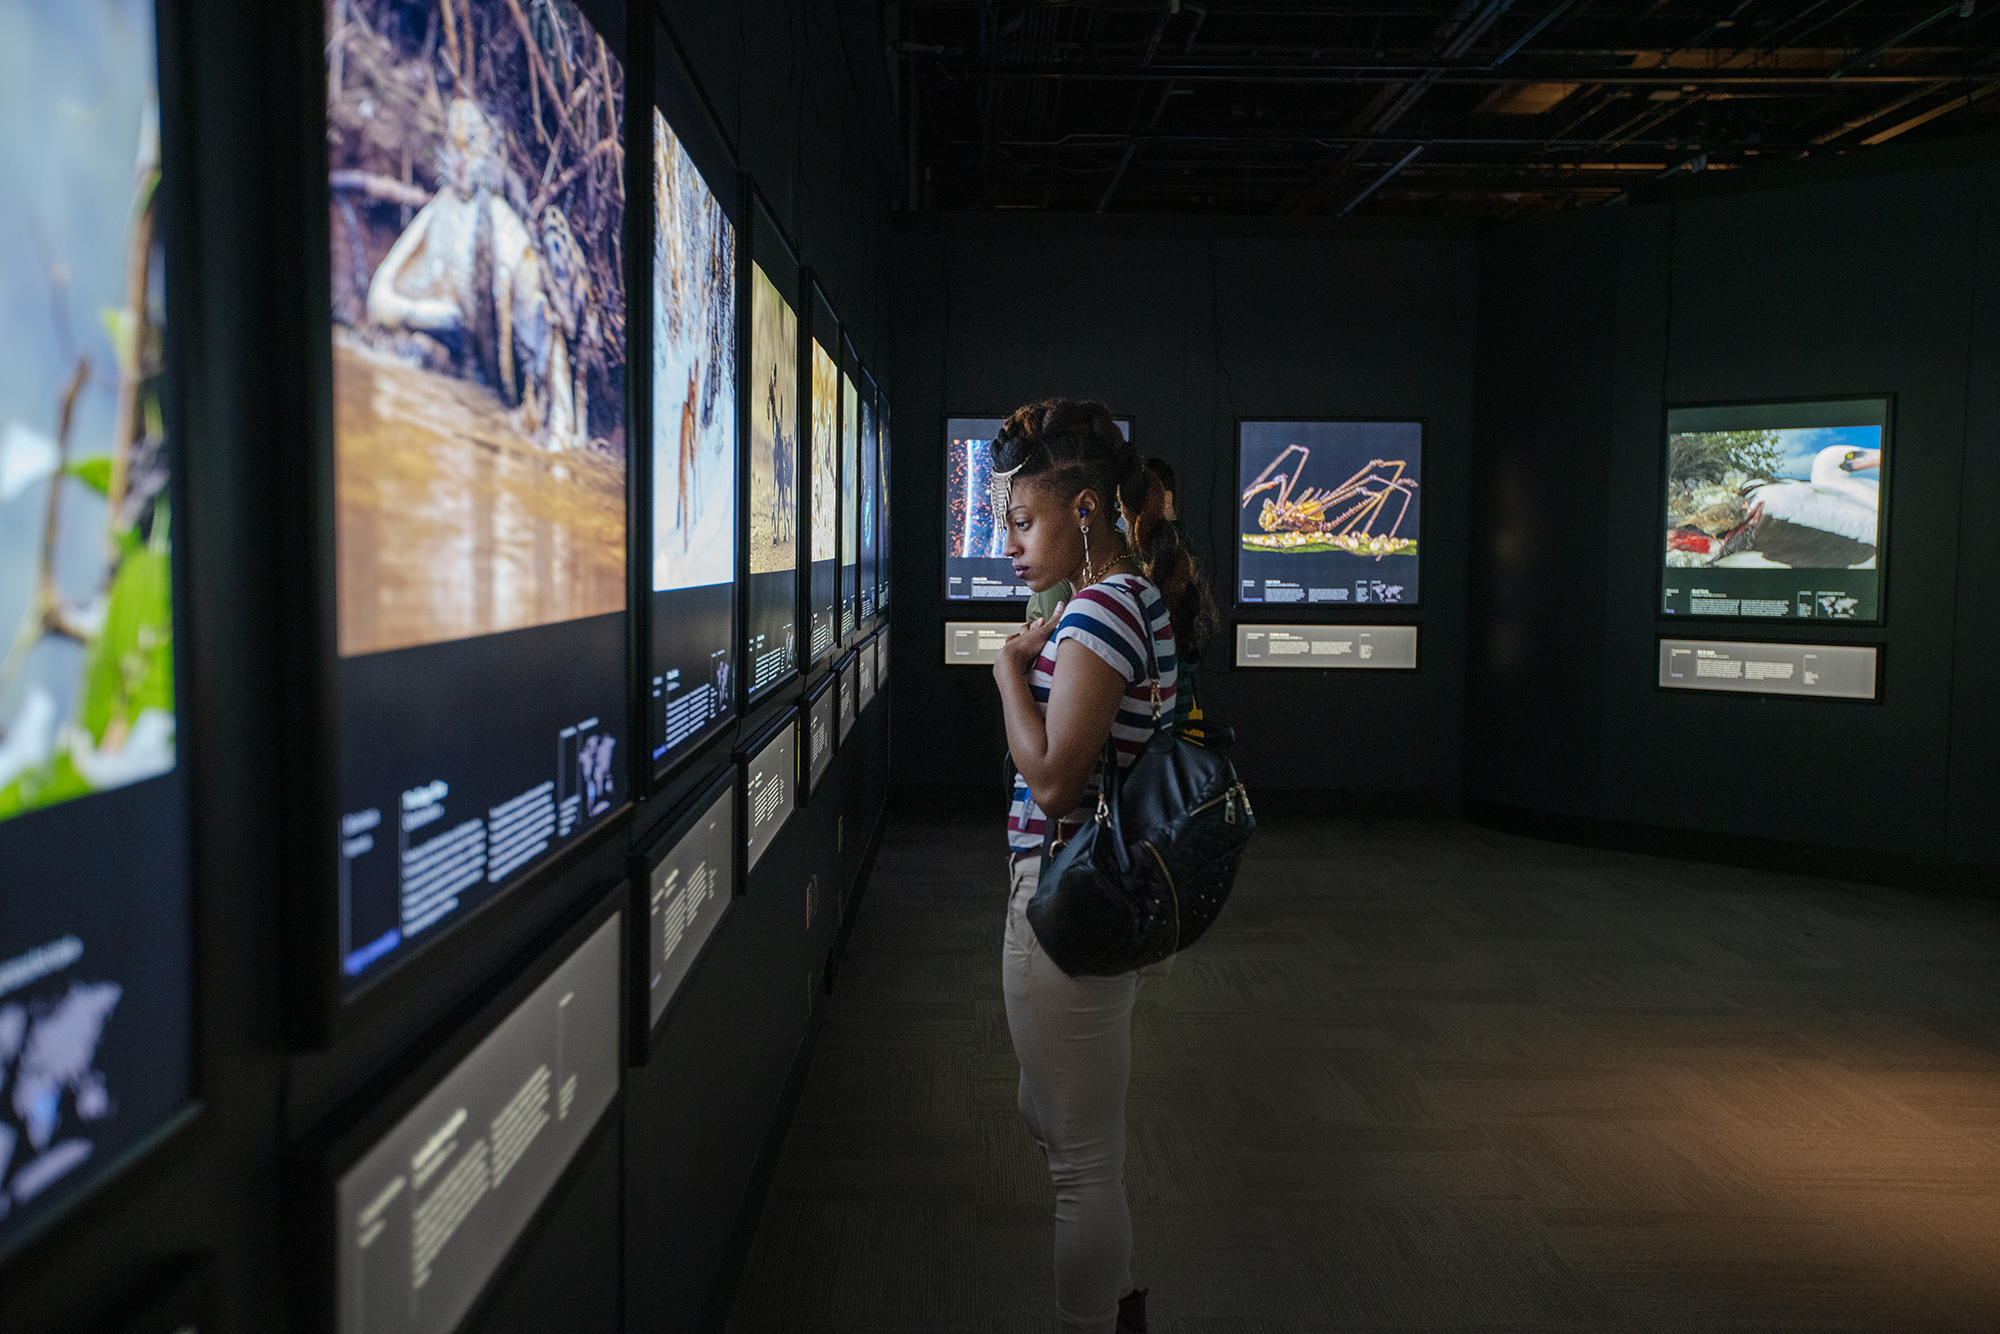 A woman stands in a dark gallery, reading the information below one of several large nature photographs. The images are backlit and cover two walls that meet at a corner in the background. Behind the woman is a photo of a large spider-like animal and a photo of a black-and-white sea bird.